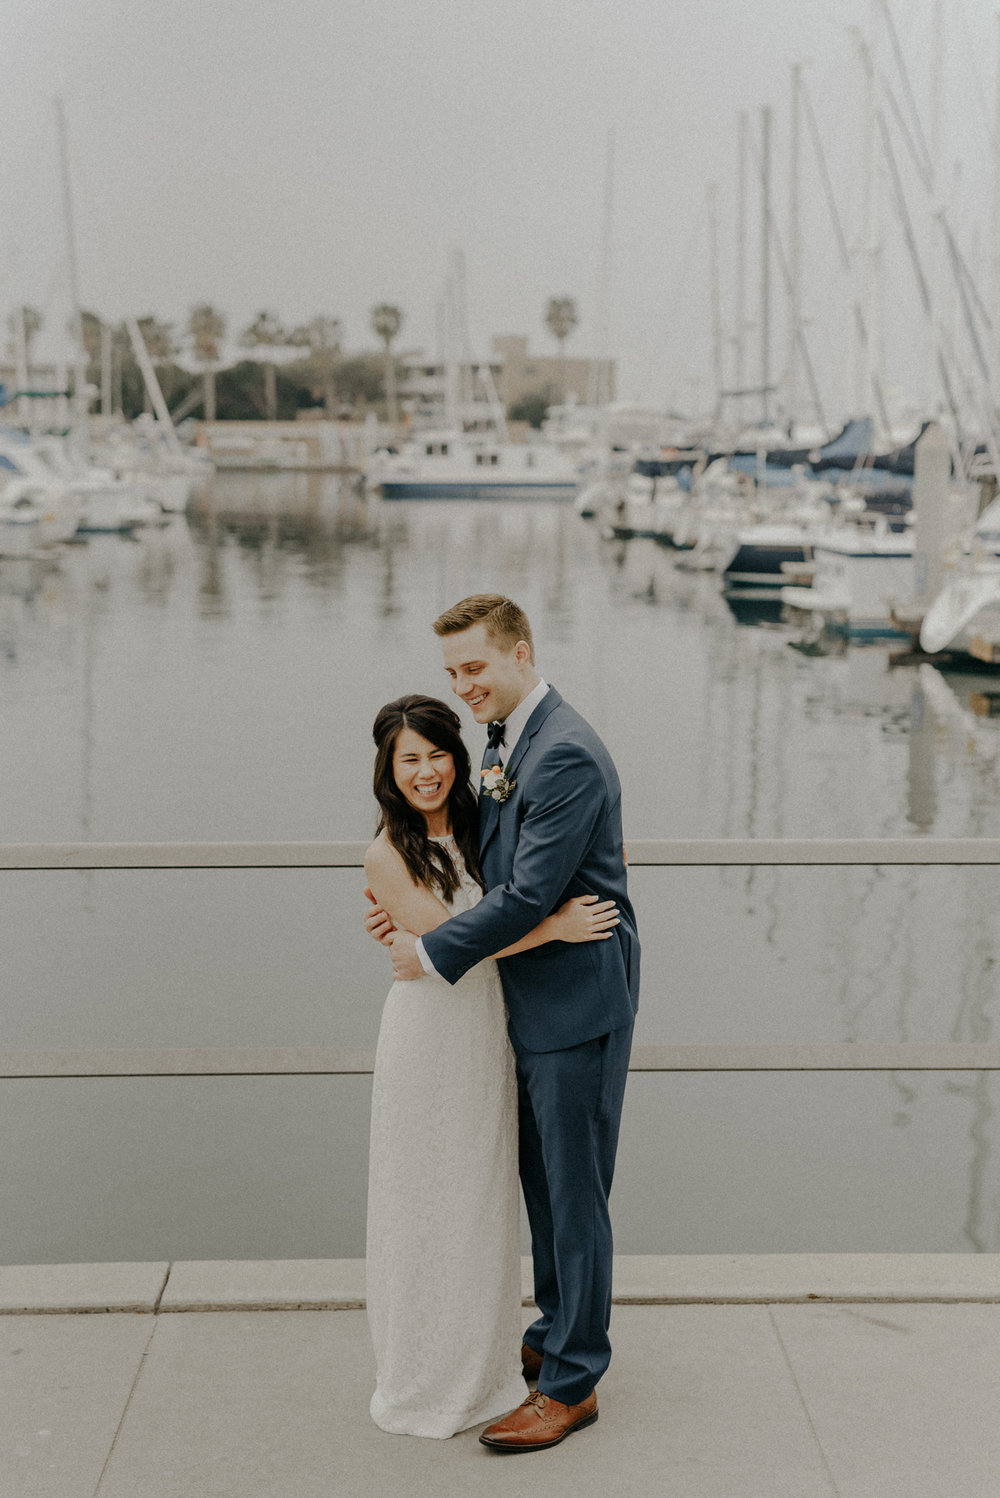 Los Angeles Wedding Photographers - The Chart House Wedding - Isaiah + Taylor Photography-034.jpg